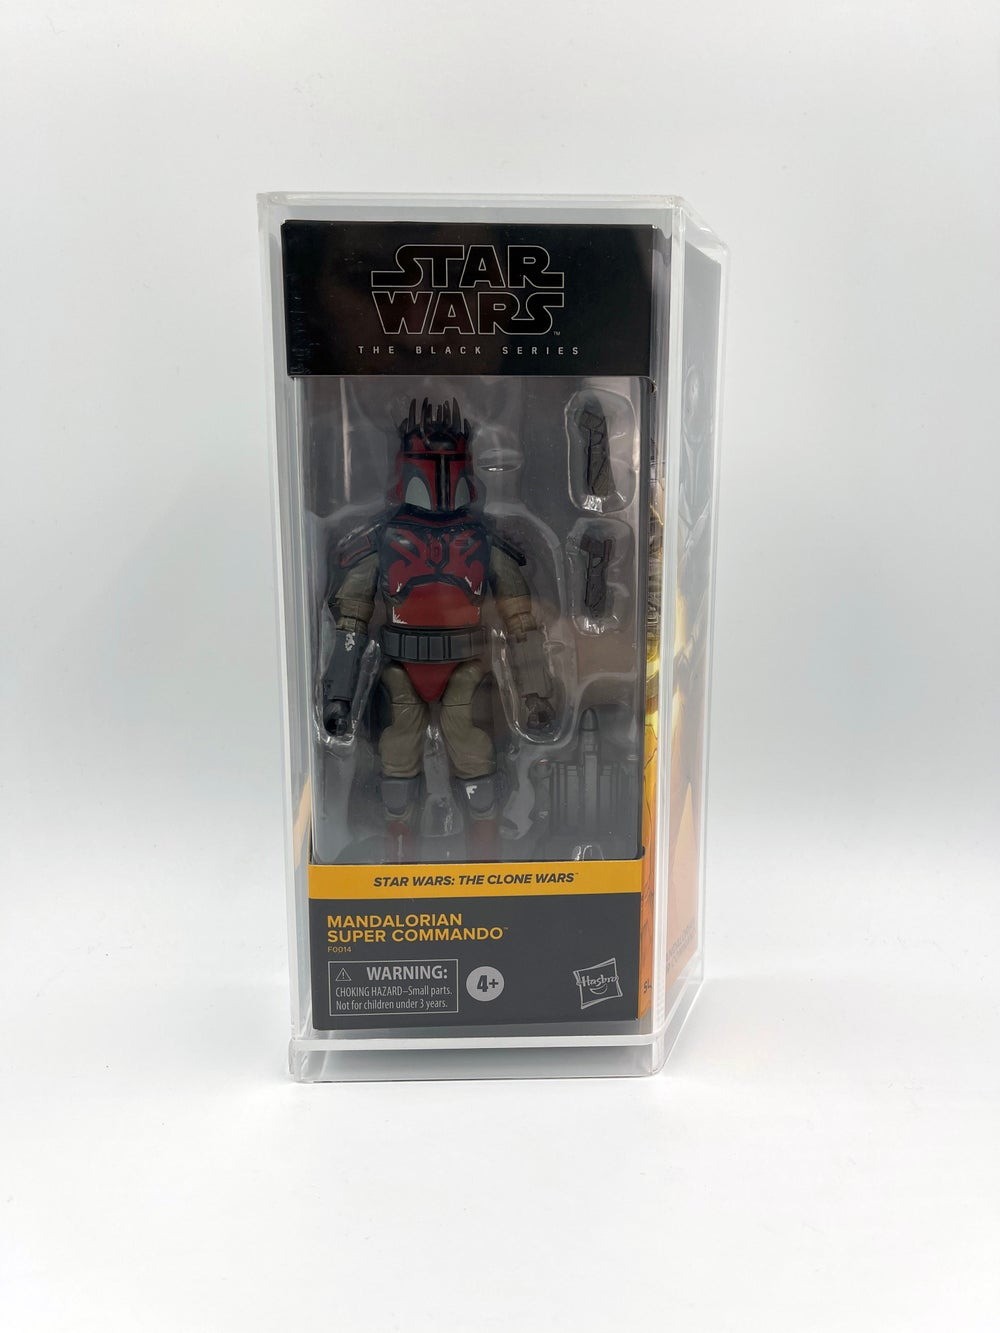 New Star Wars Black Series Acrylic Case A  - Pre-order